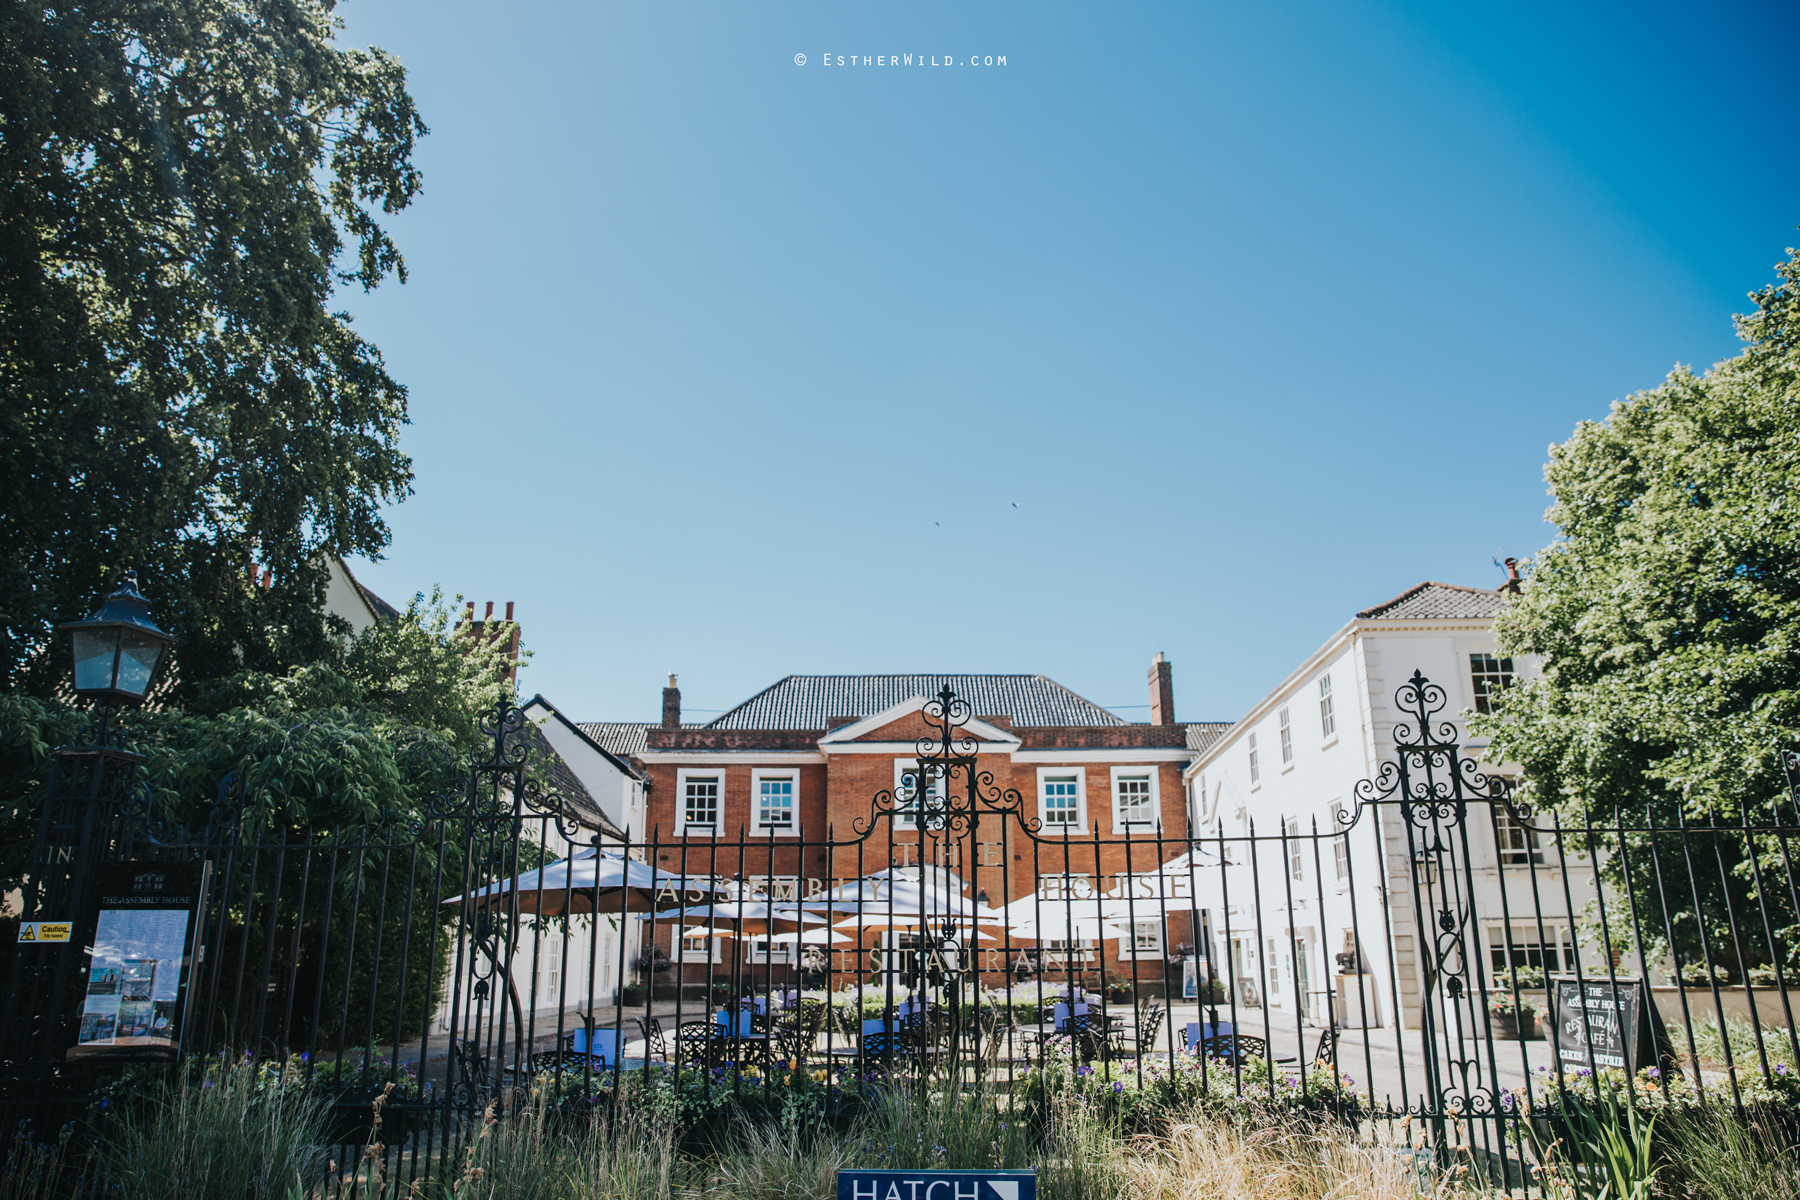 Assembly_House_Norwich_Norfolk_Esther_Wild_Photographer_IMG_0110.jpg